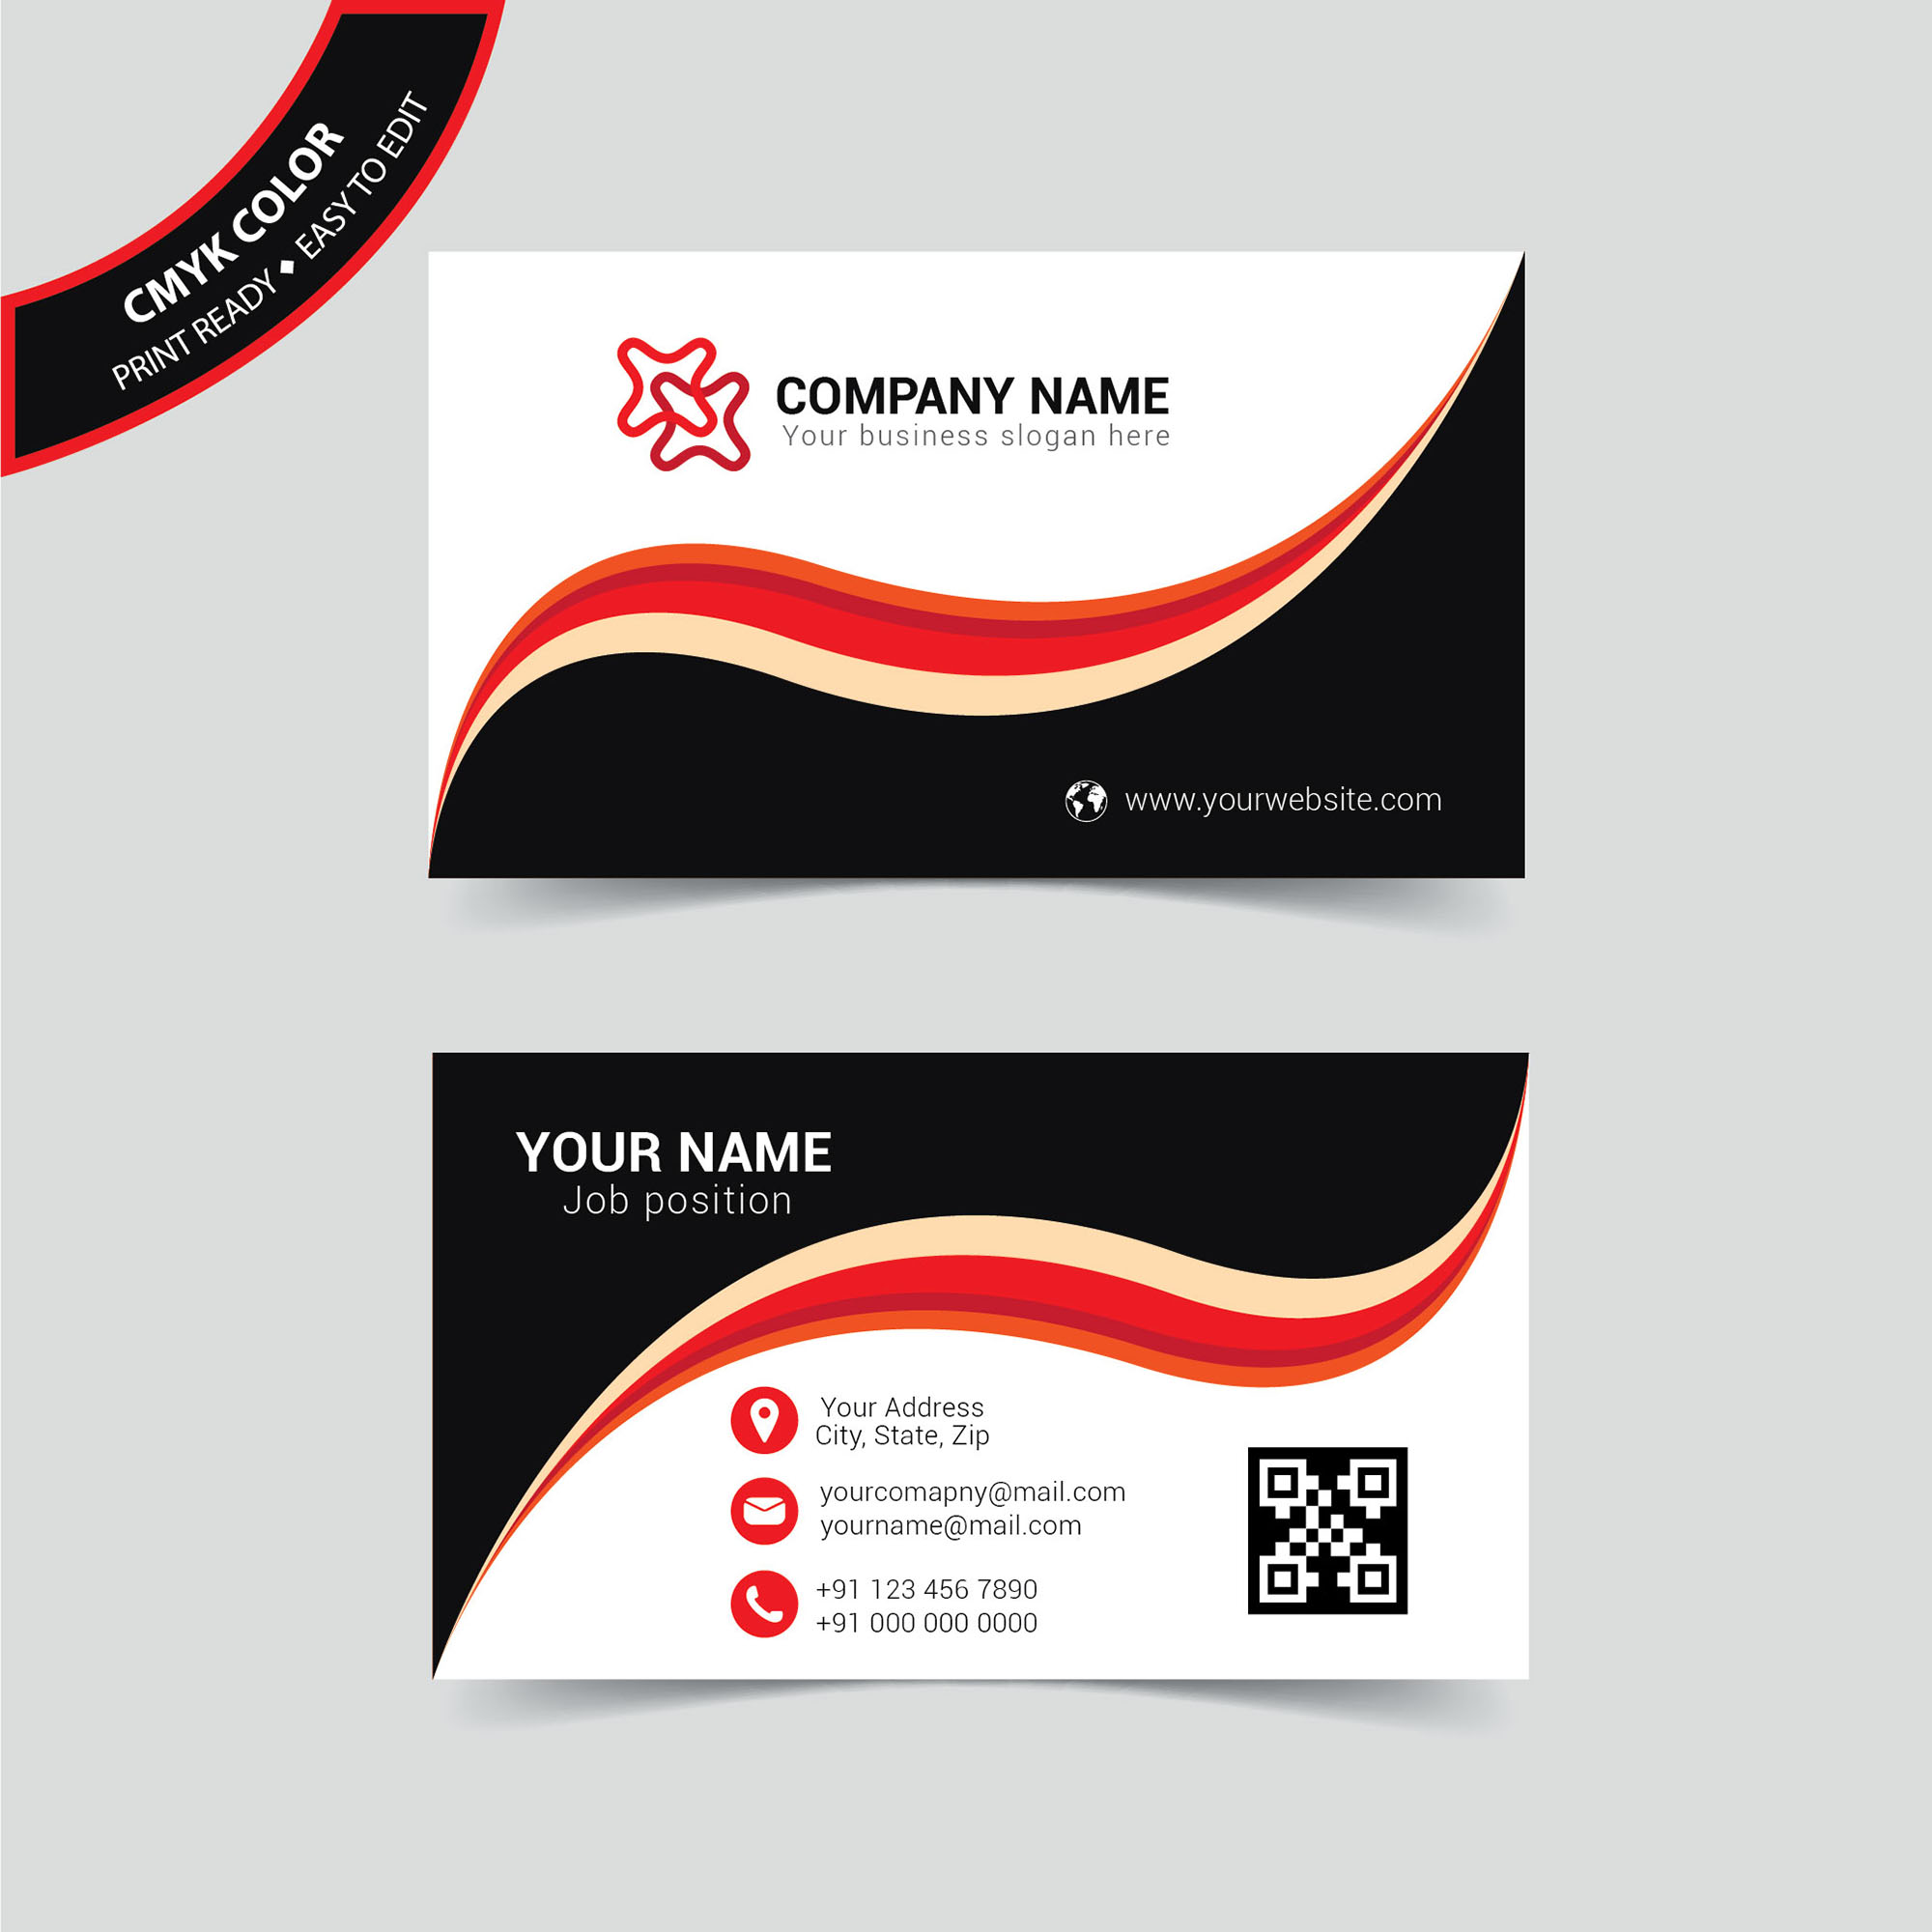 Corporate Name Card Design Free Download - Wisxi.com